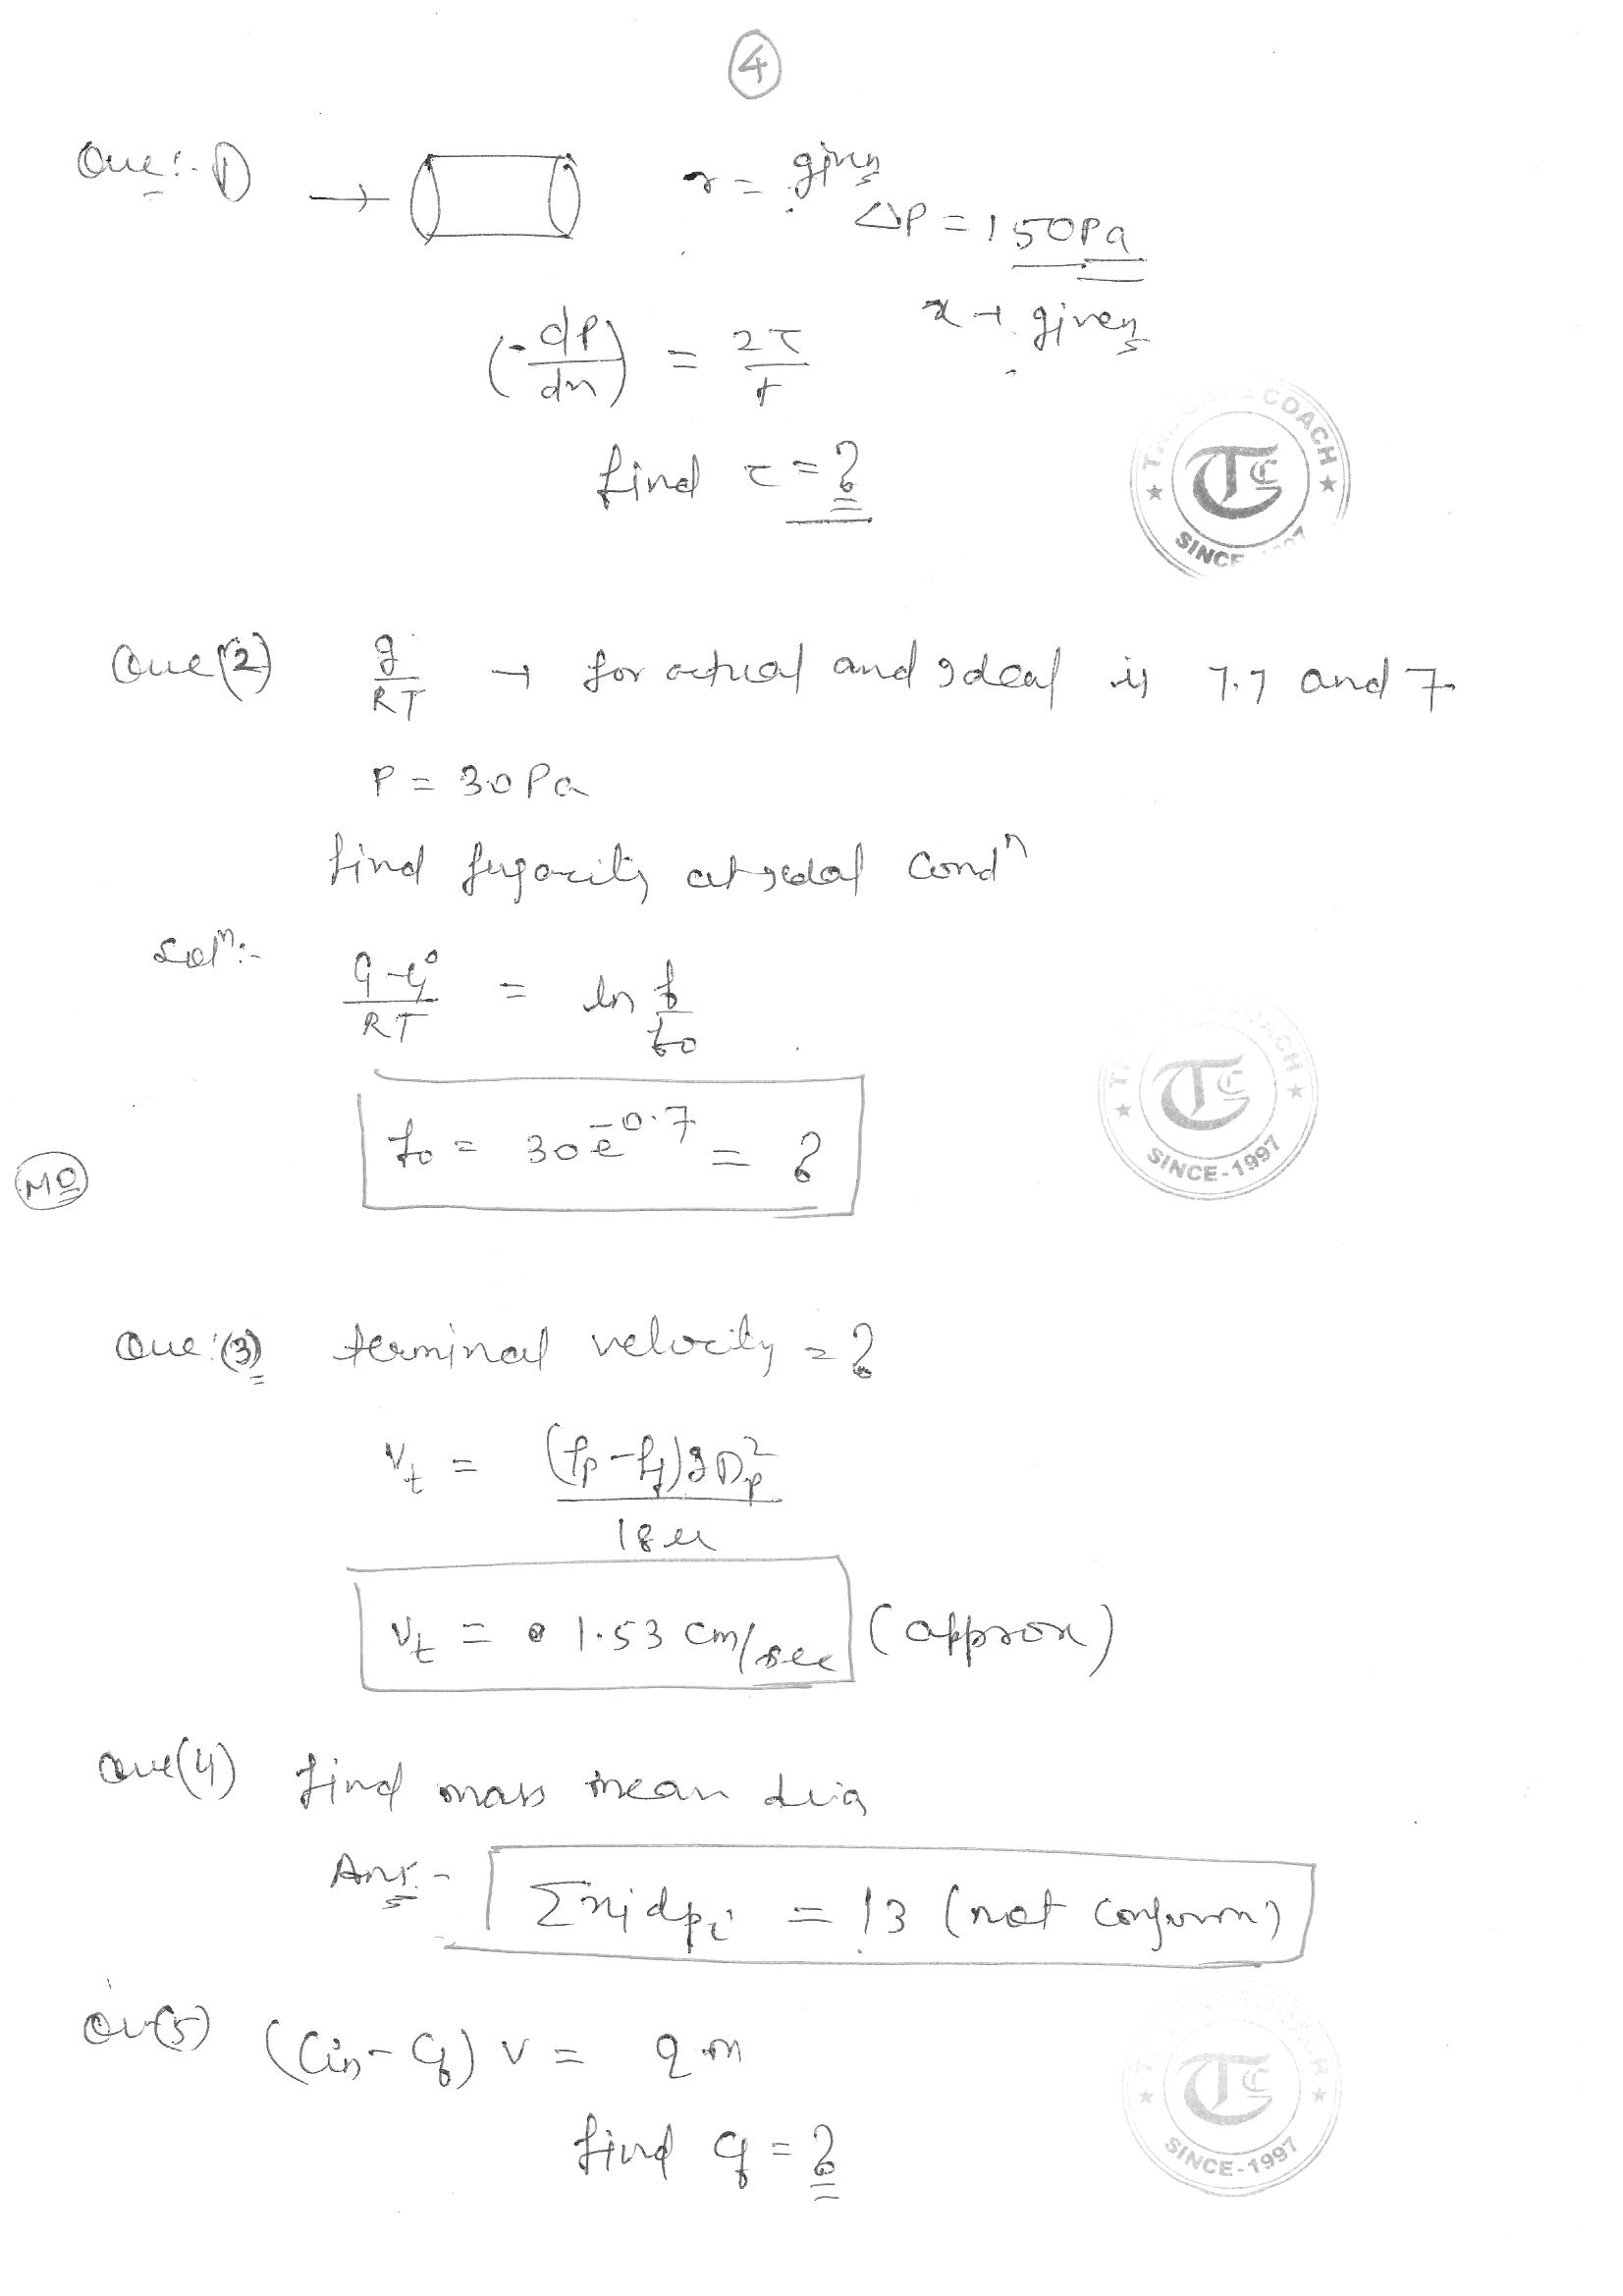 CHEMICAL ENGINEERING GATE 2017 SOLUTIONS by THE GATE COACH